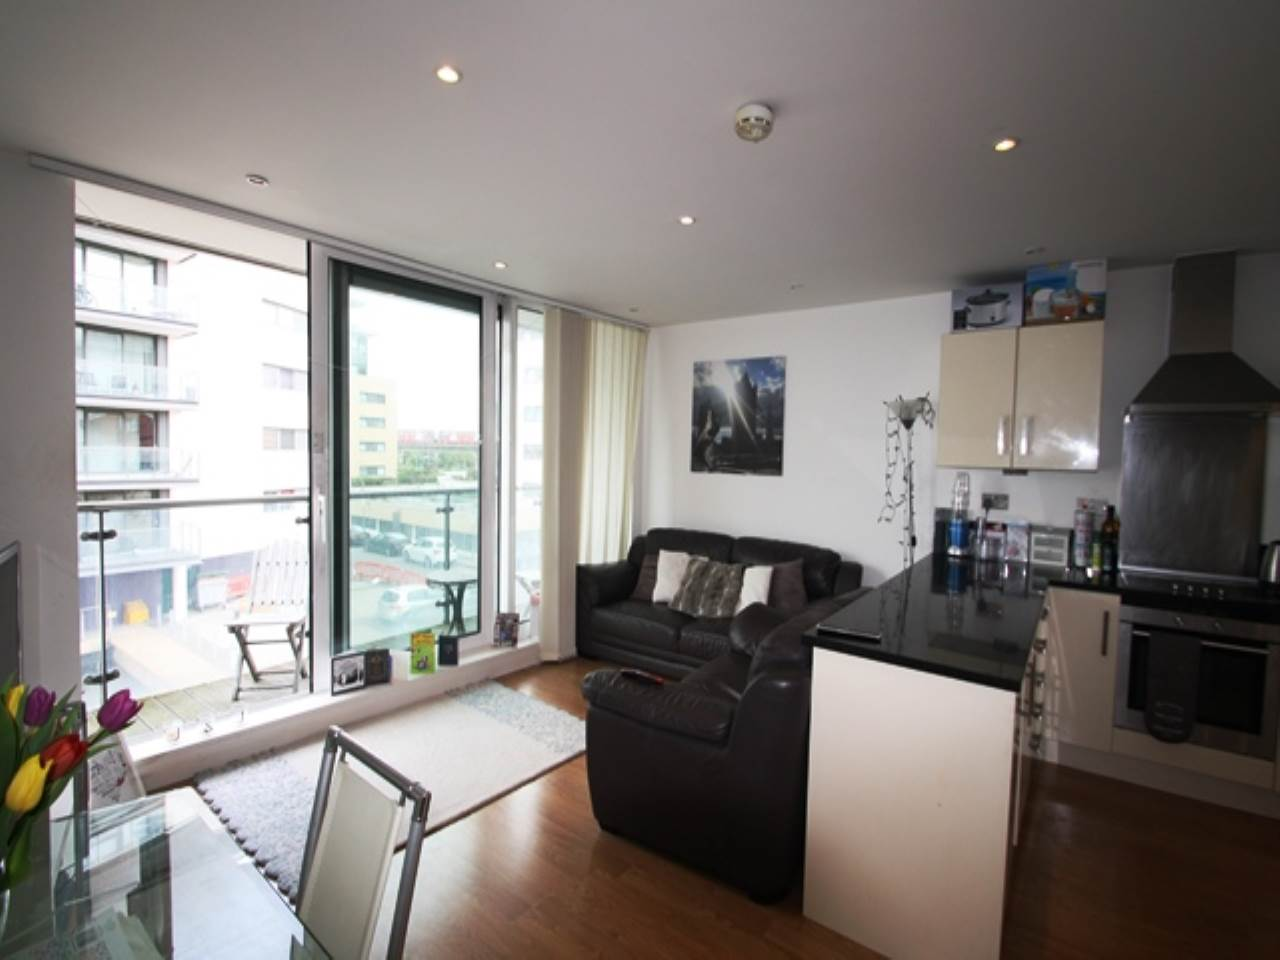 1 bed house to rent in The Helm, Basin Approach, E16